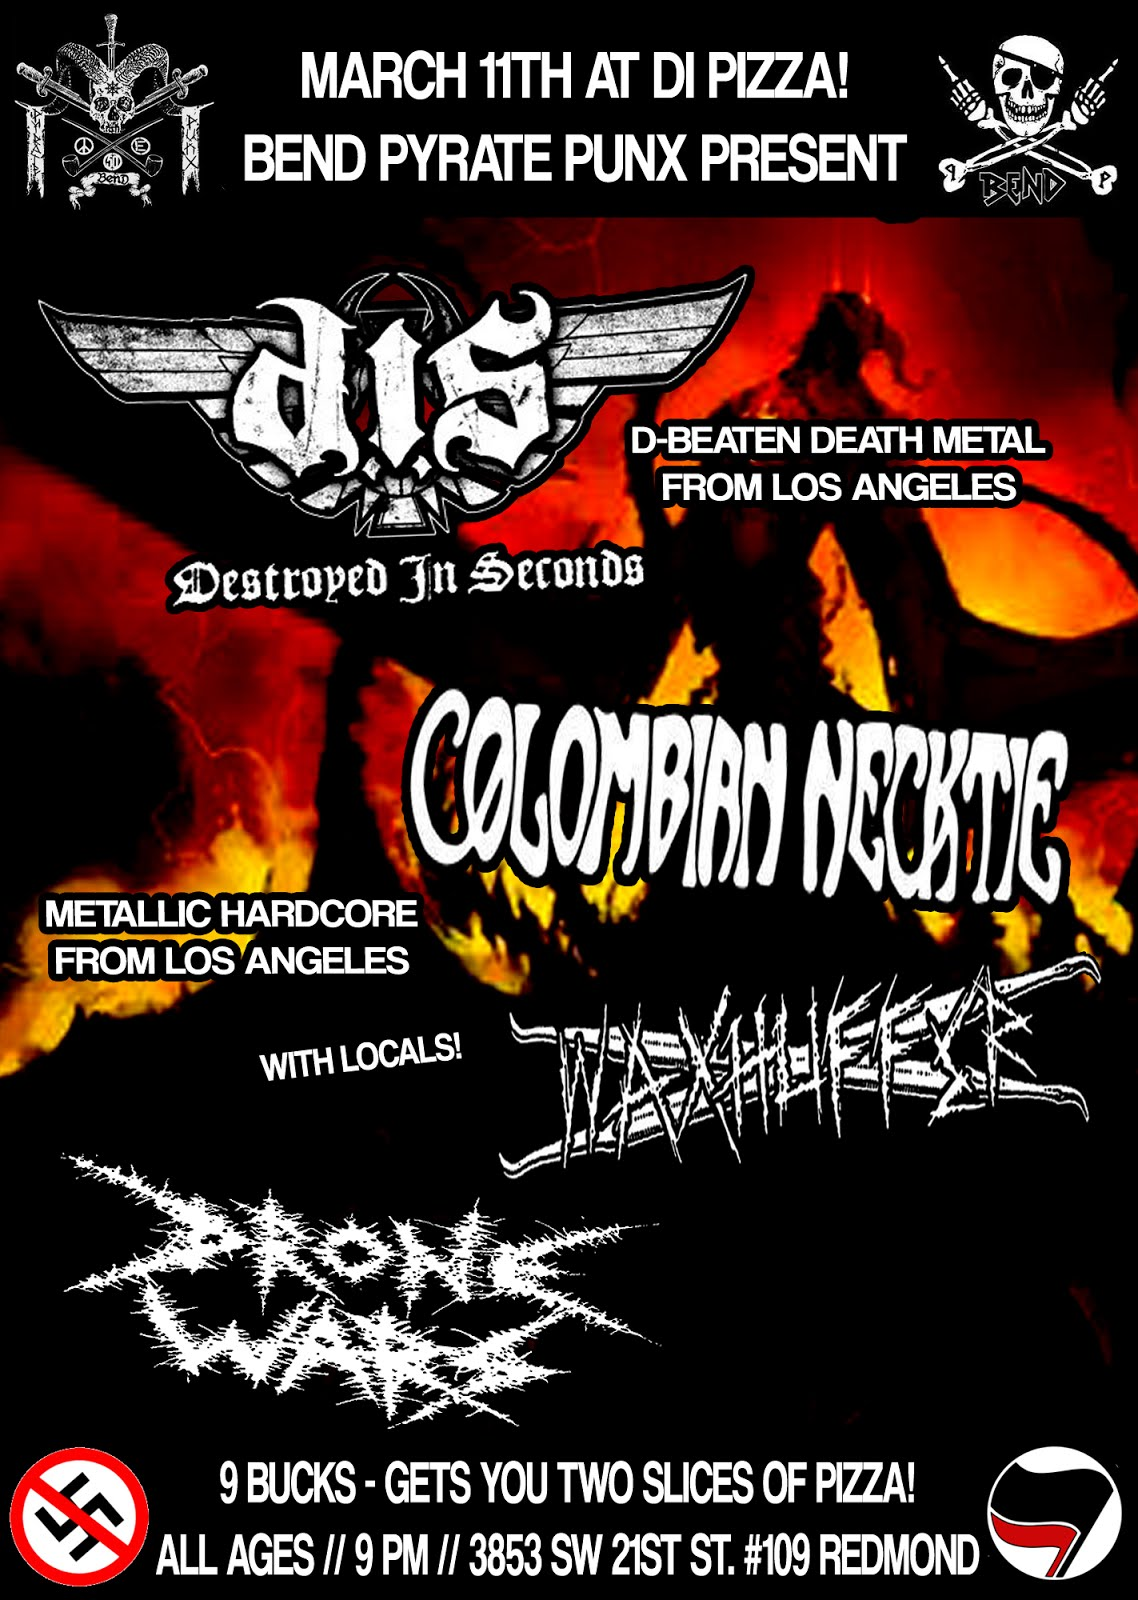 DESTROYED IN SECONDS, COLOMBIAN NECKTIE, DRONE WARS, AND WAXHUFFER